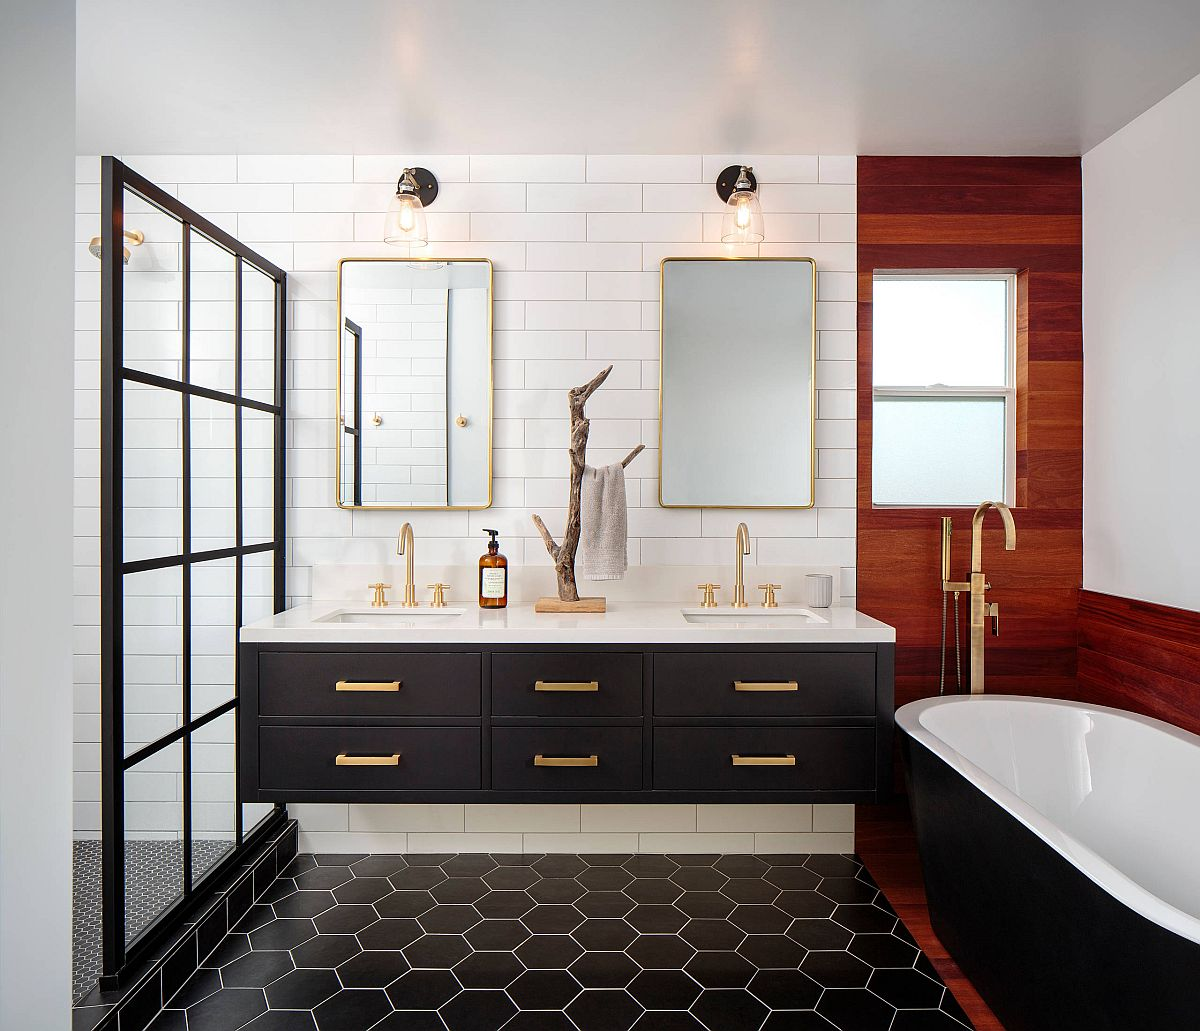 Master bathroom in black and white with brass handles and frames along with wooden accent section